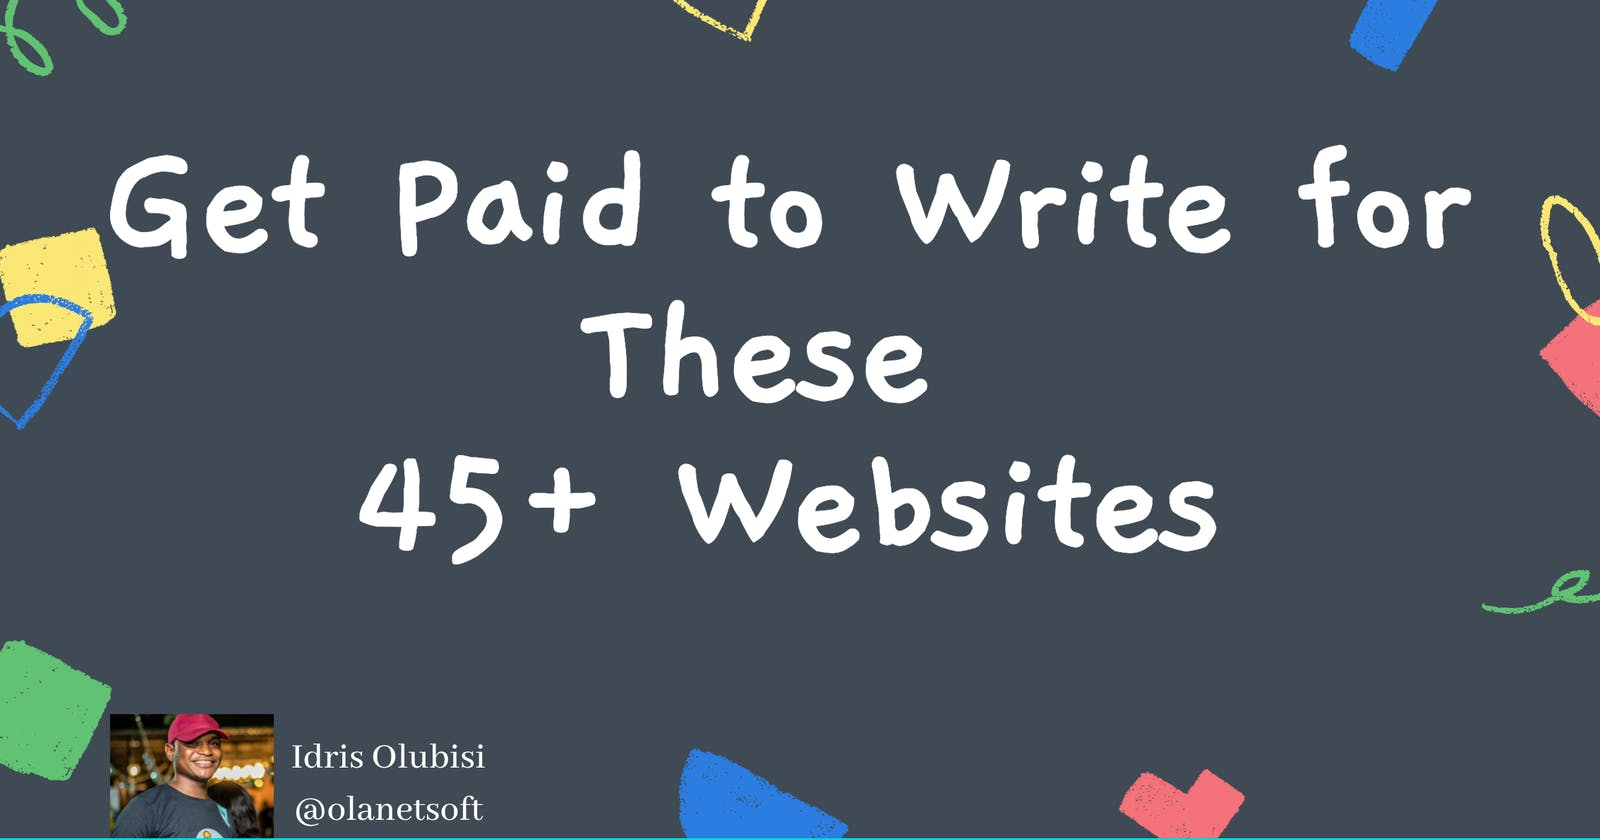 Get Paid to Write for These 45+ Websites